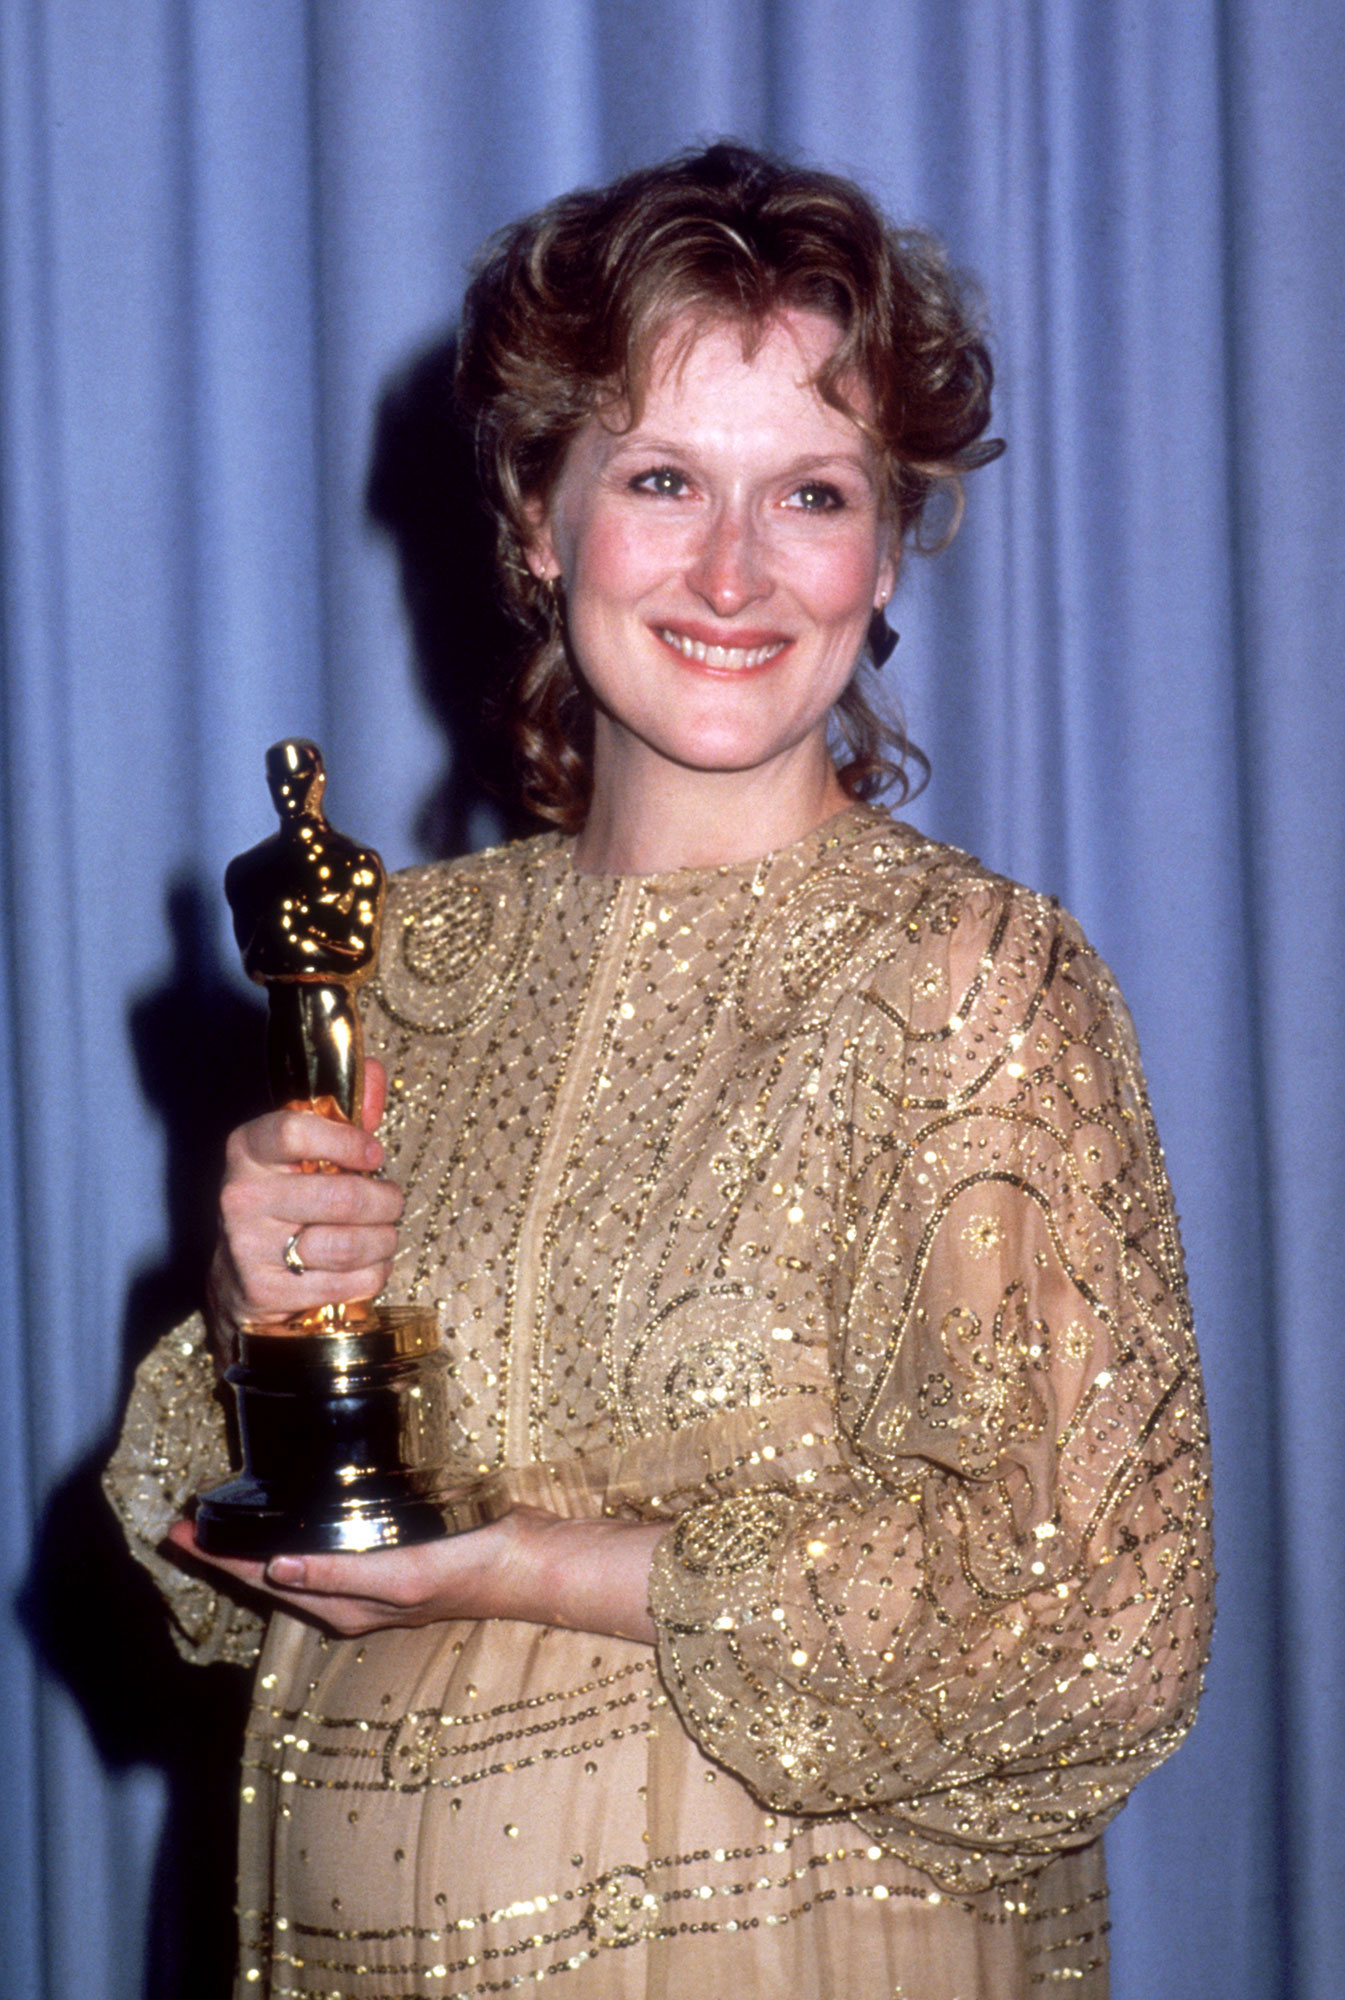 Meryl Streep 55th Academy Awards - The Big Little Lies star had to make more room in her trophy cabinet after the 55th Academy Awards, where she took home the Oscar for Best Actress for her role in 1982's drama Sophie's Choice. She accepted the honor while pregnant with her daughter Mamie Gummer.